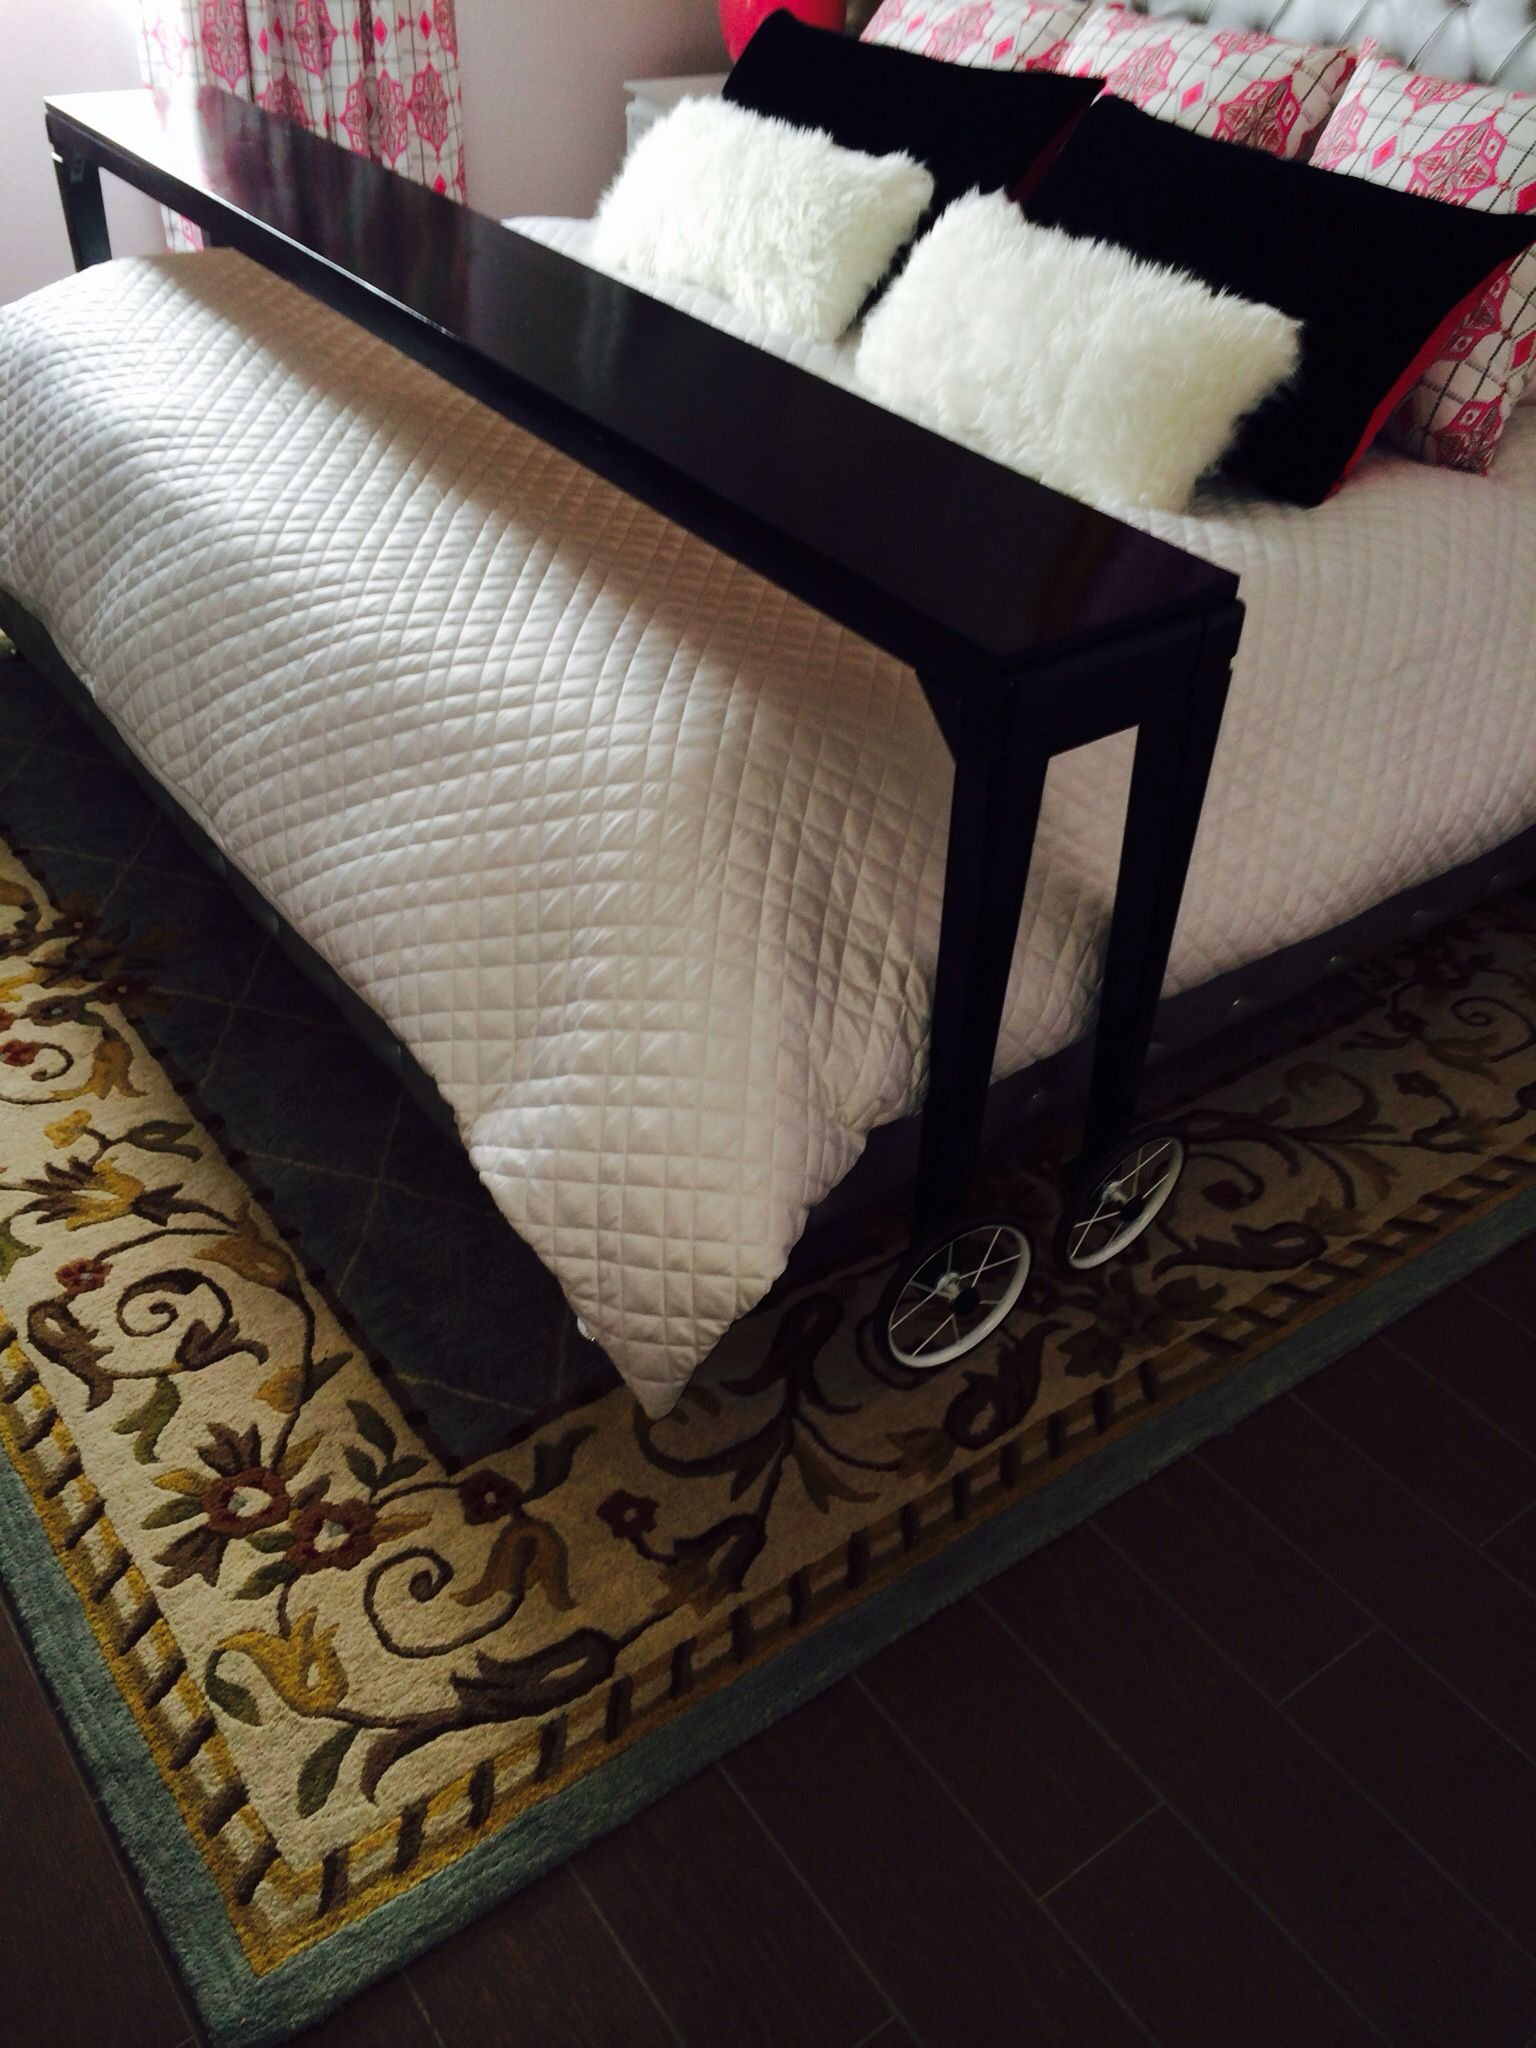 Rolling Bed Table Check Now Posted On Las Vegas Craigslist For 150 00 3 1 2014 Bed Table Creative Beds Rolling Bed